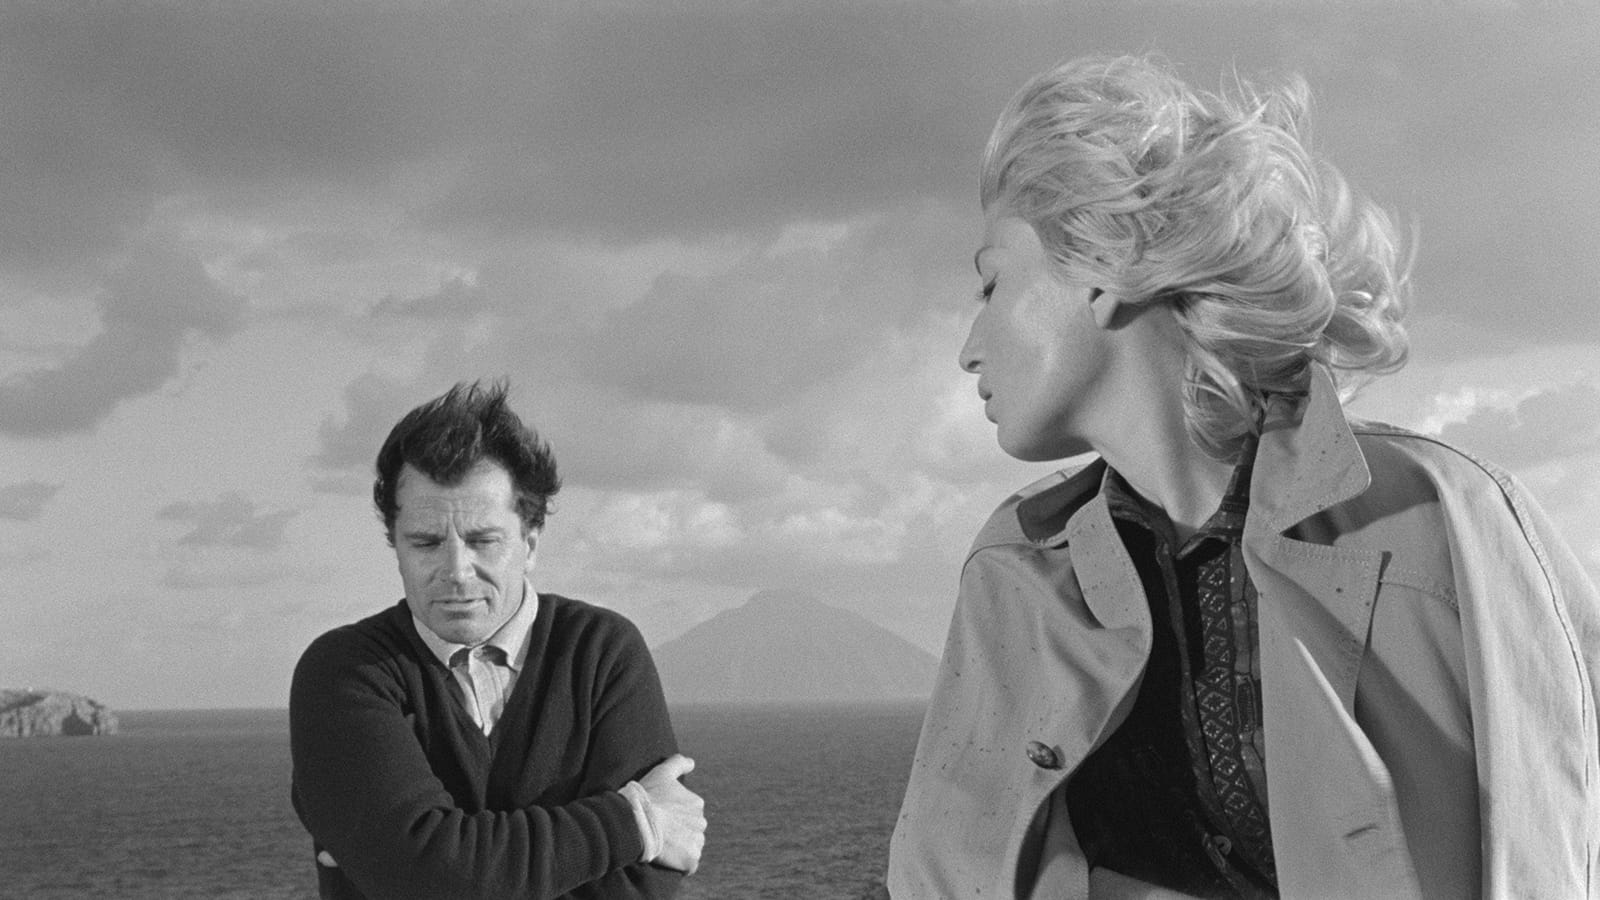 And Then We Lost Antonioni >> L Avventura Michelangelo Antonioni S Visual Poetry And Its Impact